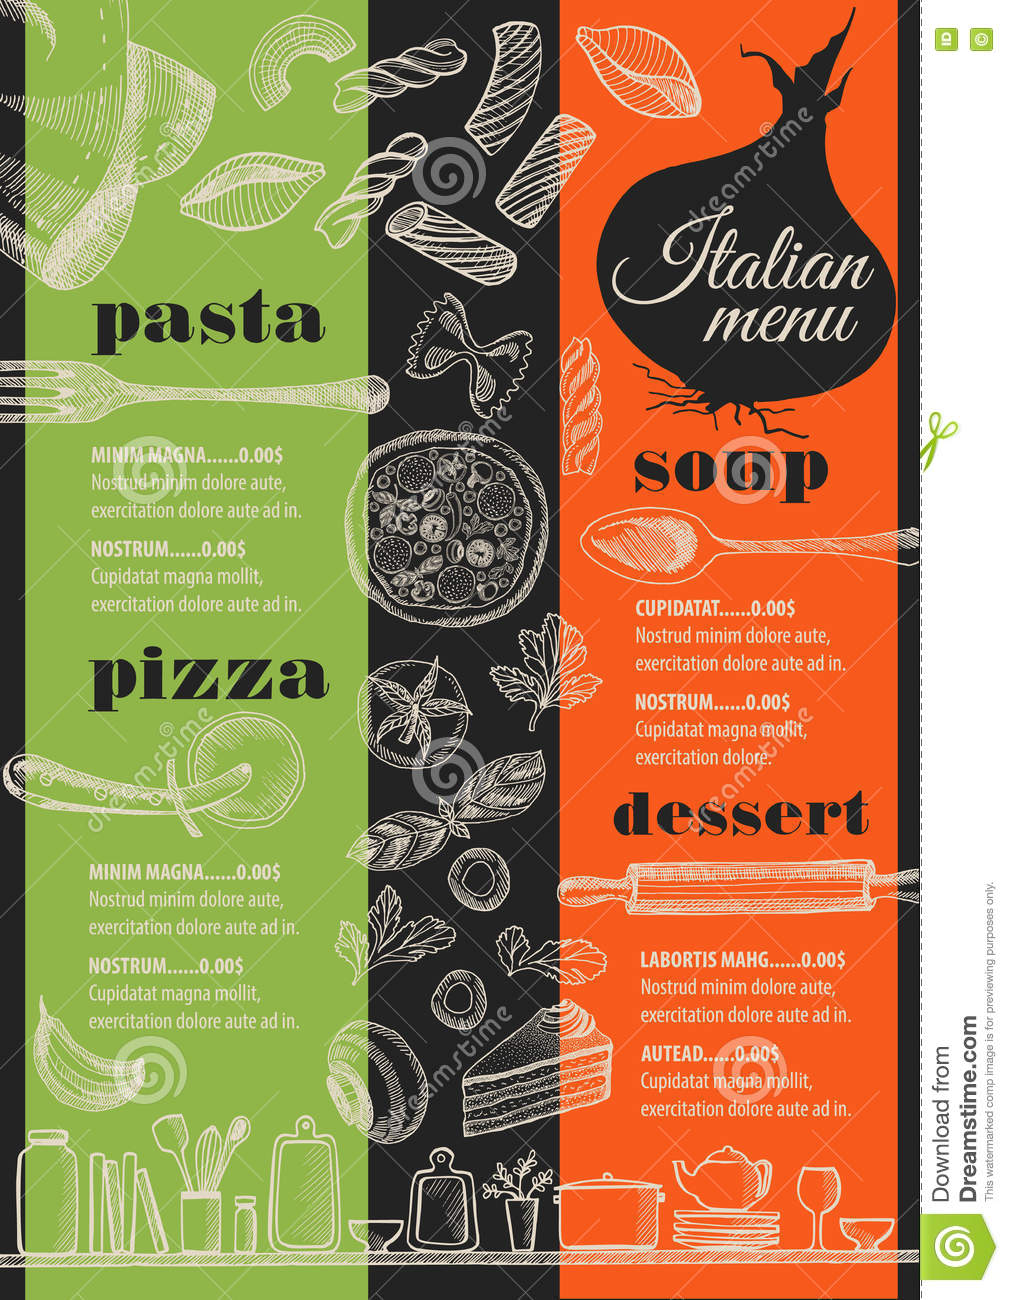 Menu Italian Restaurant Food Template Placemat Stock Vector Illustration Of Barbecue Doodle 81471575